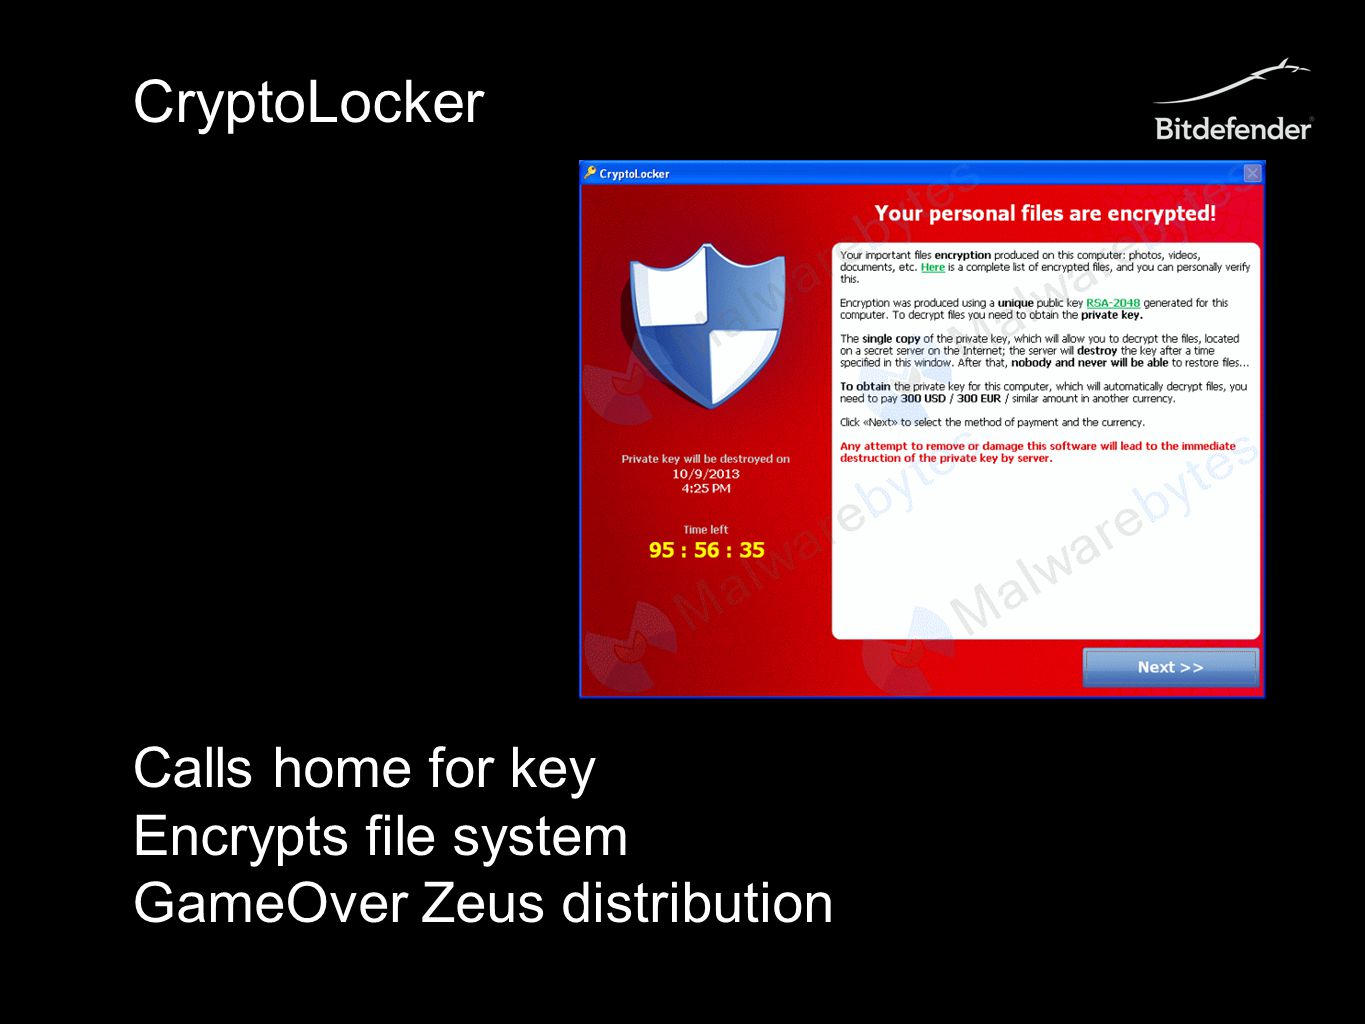 CryptoLocker Calls home for key Encrypts file system GameOver Zeus distribution